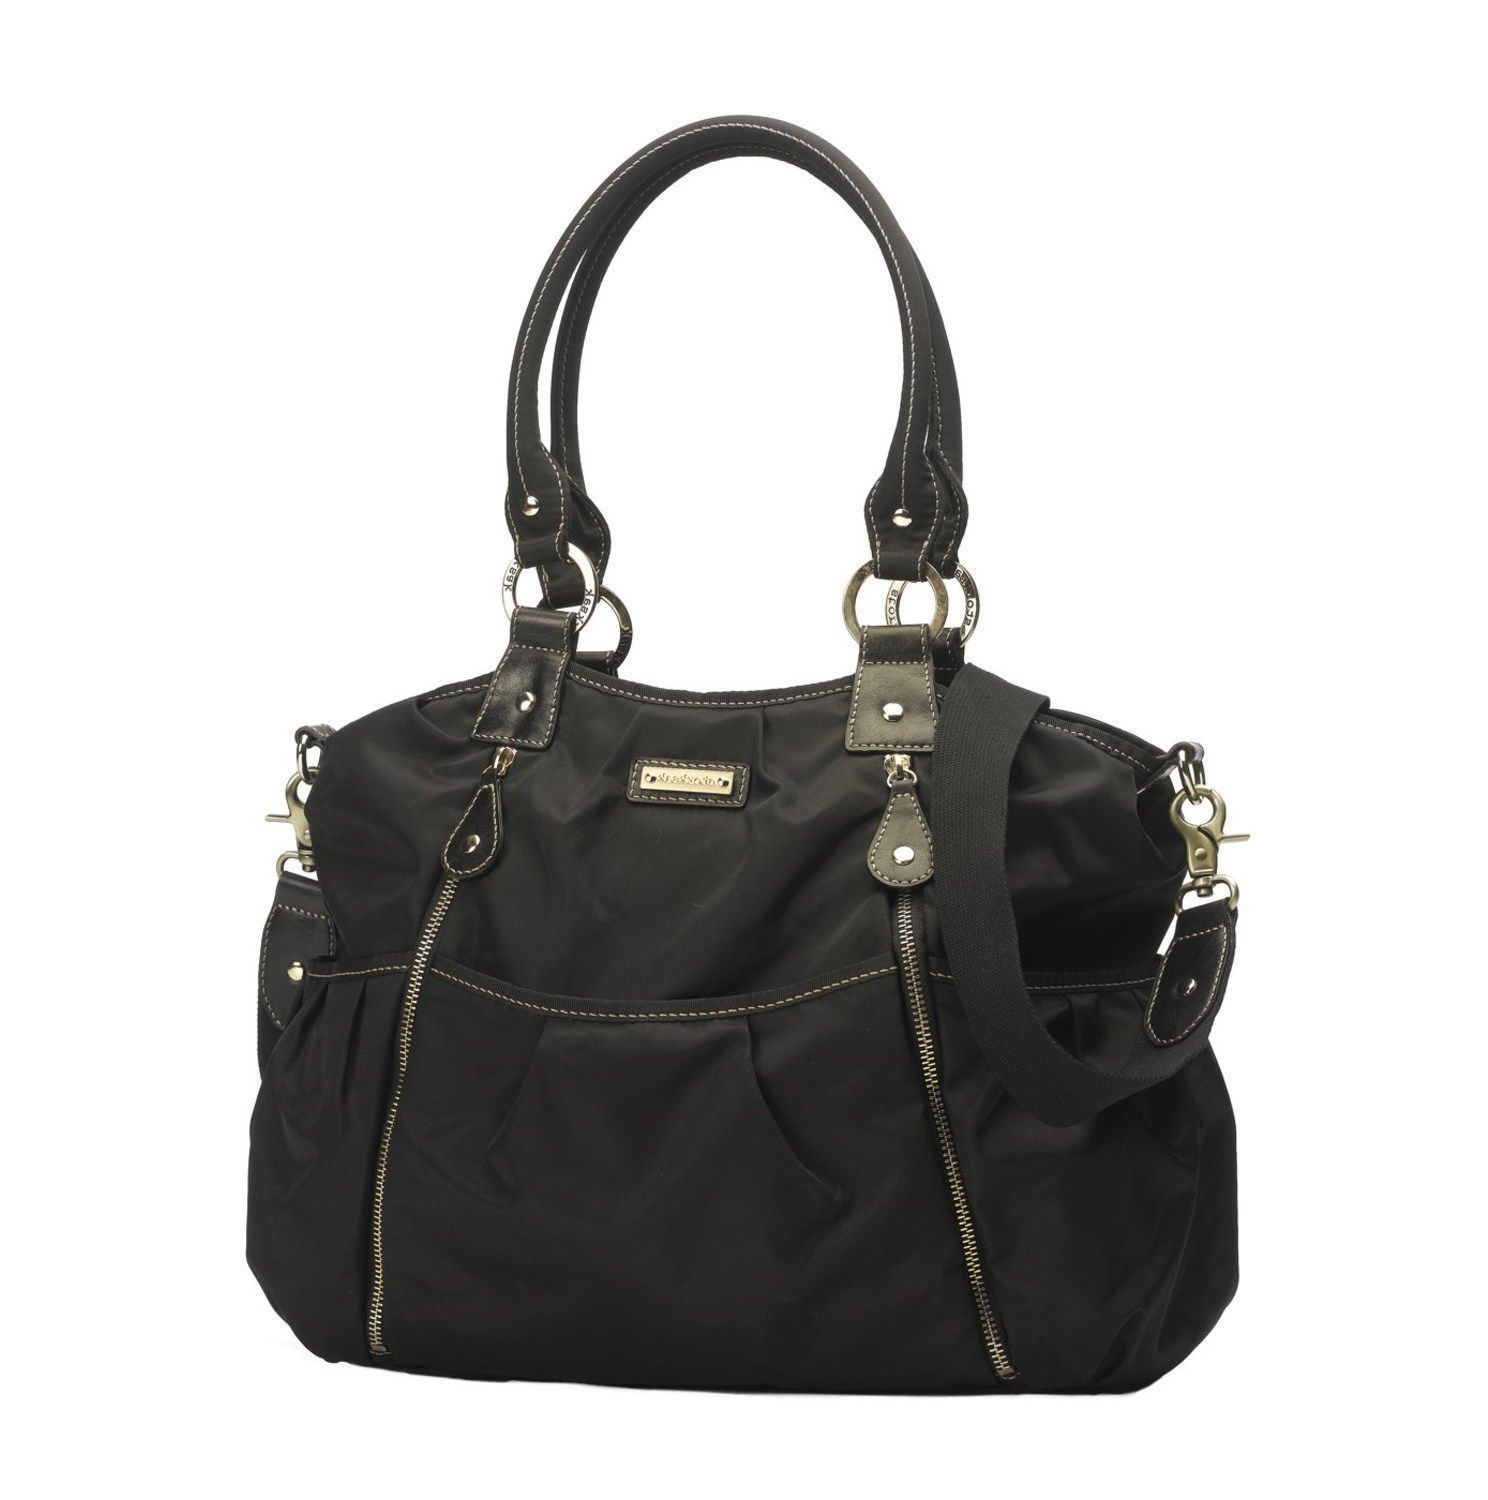 celebrity diaper bags handbags and purses on bags. Black Bedroom Furniture Sets. Home Design Ideas